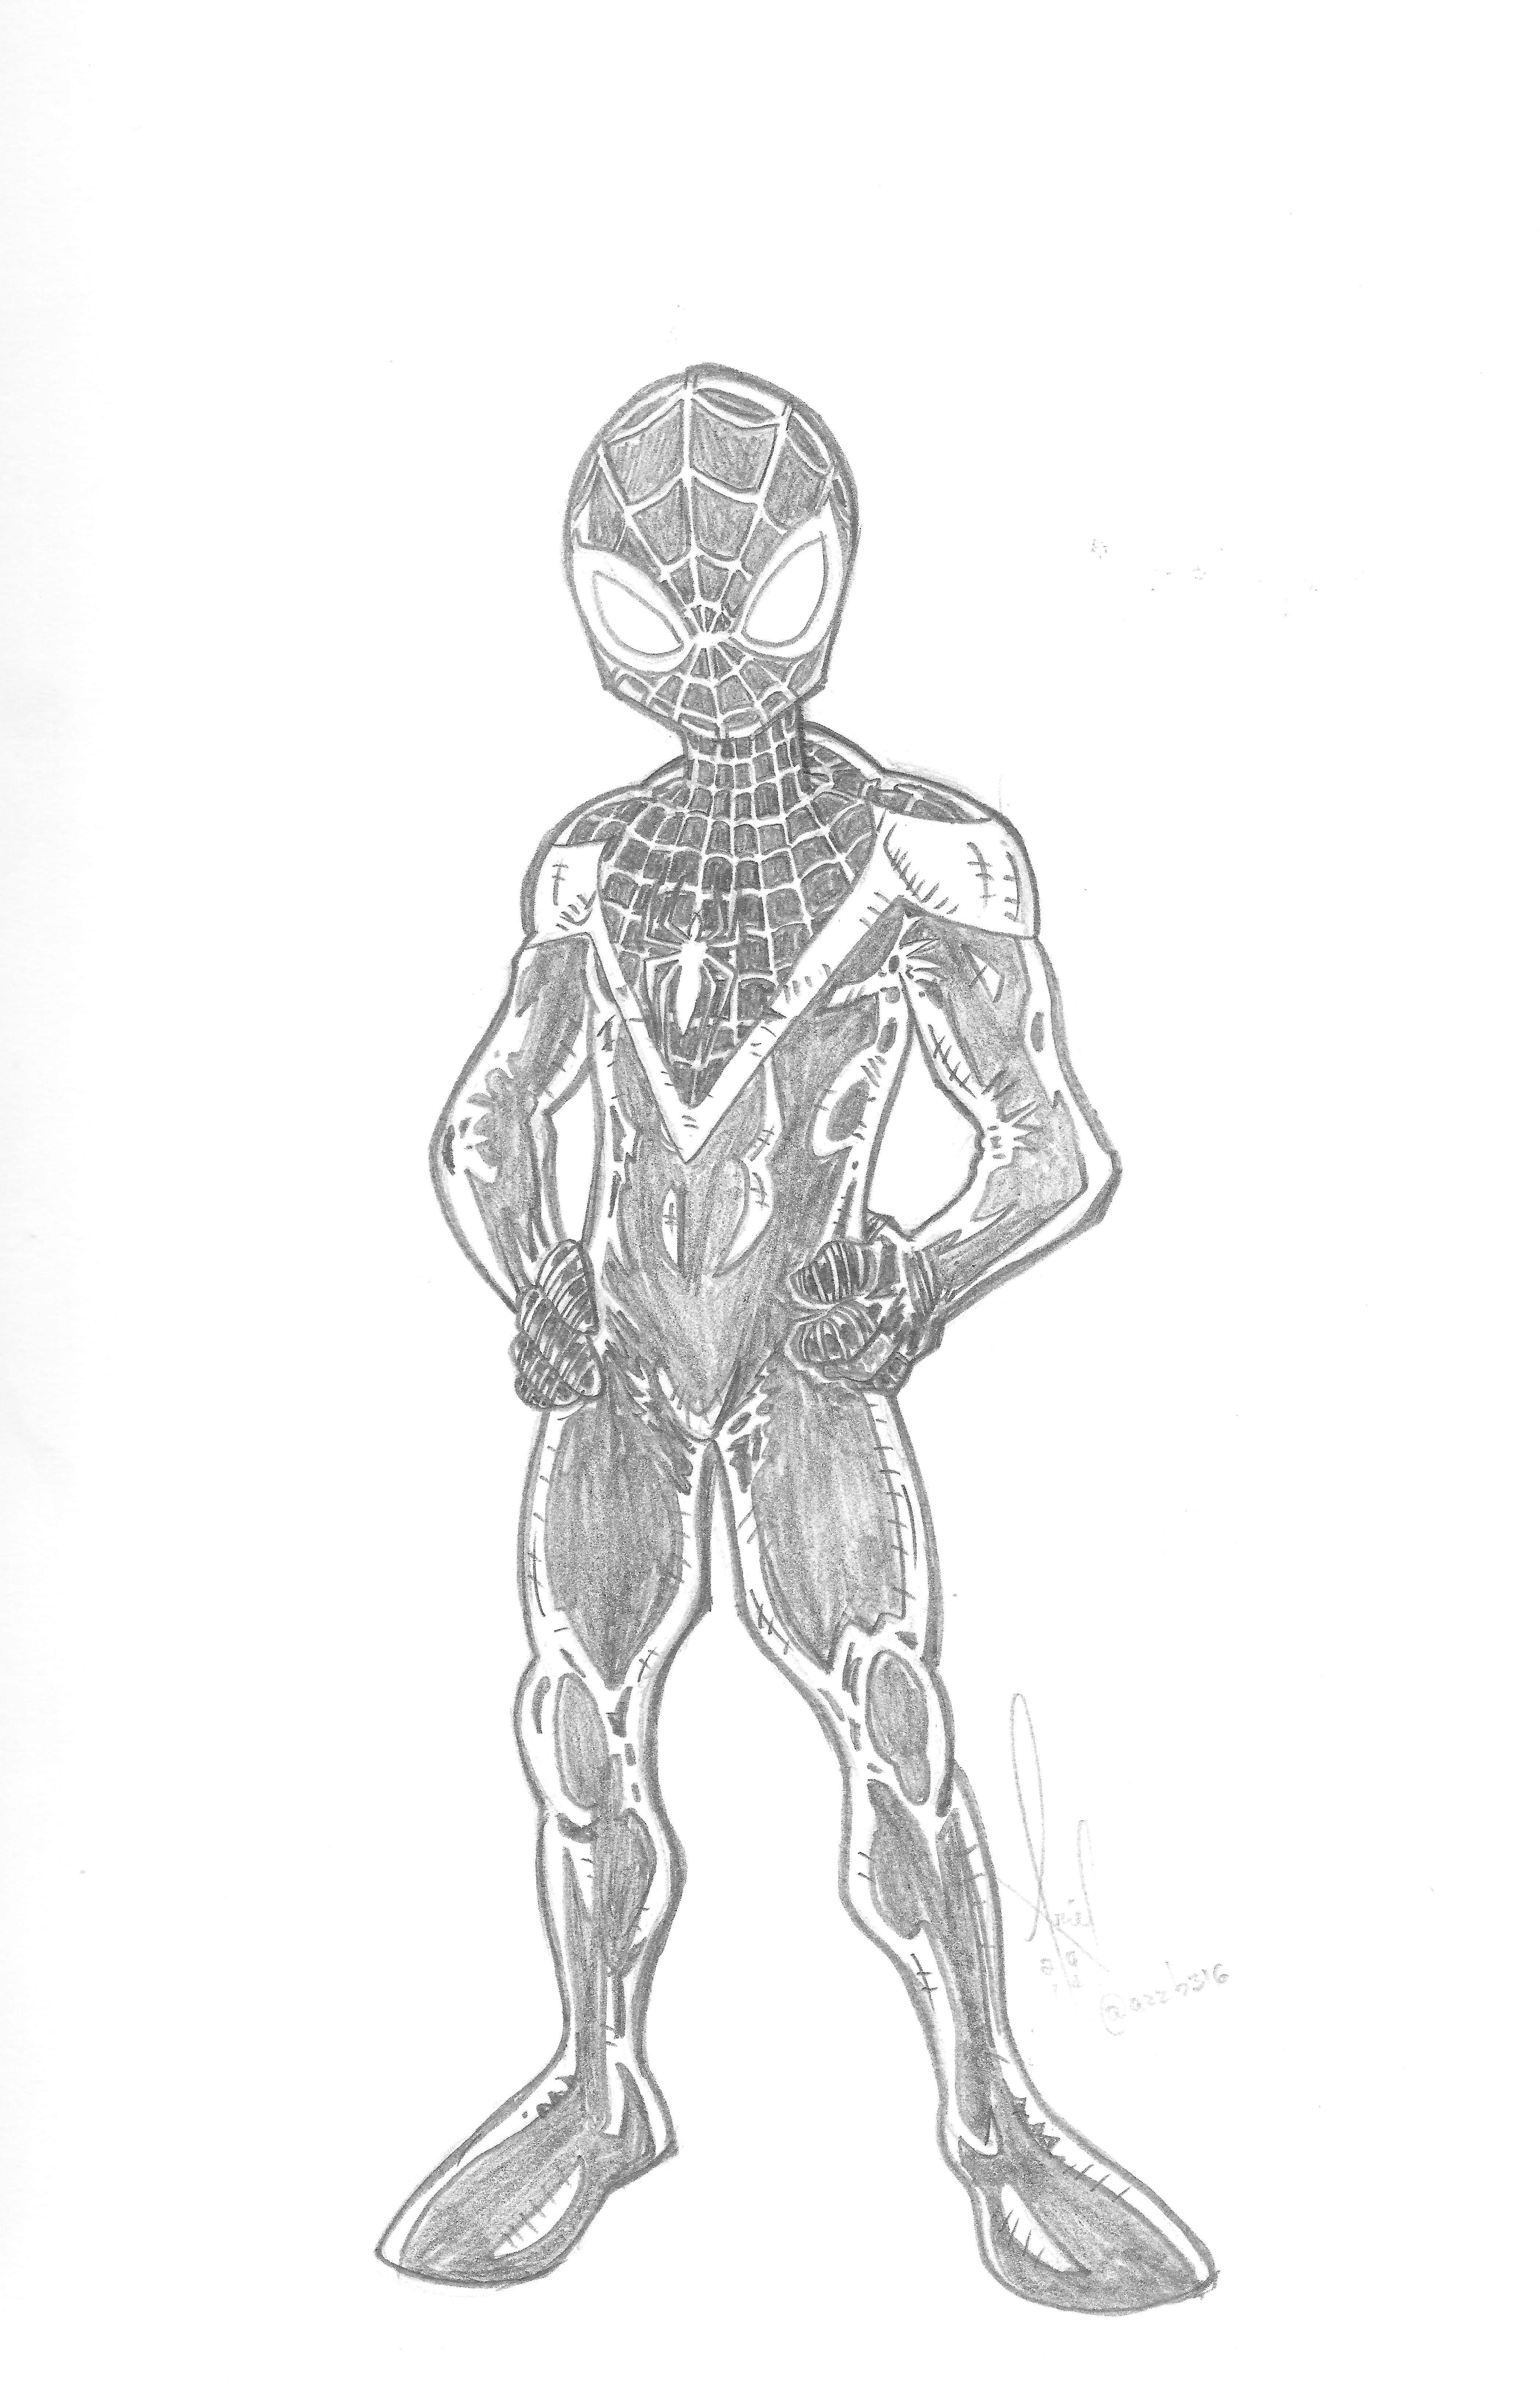 spiderman coloring pages miles morales | Ultimate Spiderman Miles Morales | Arte